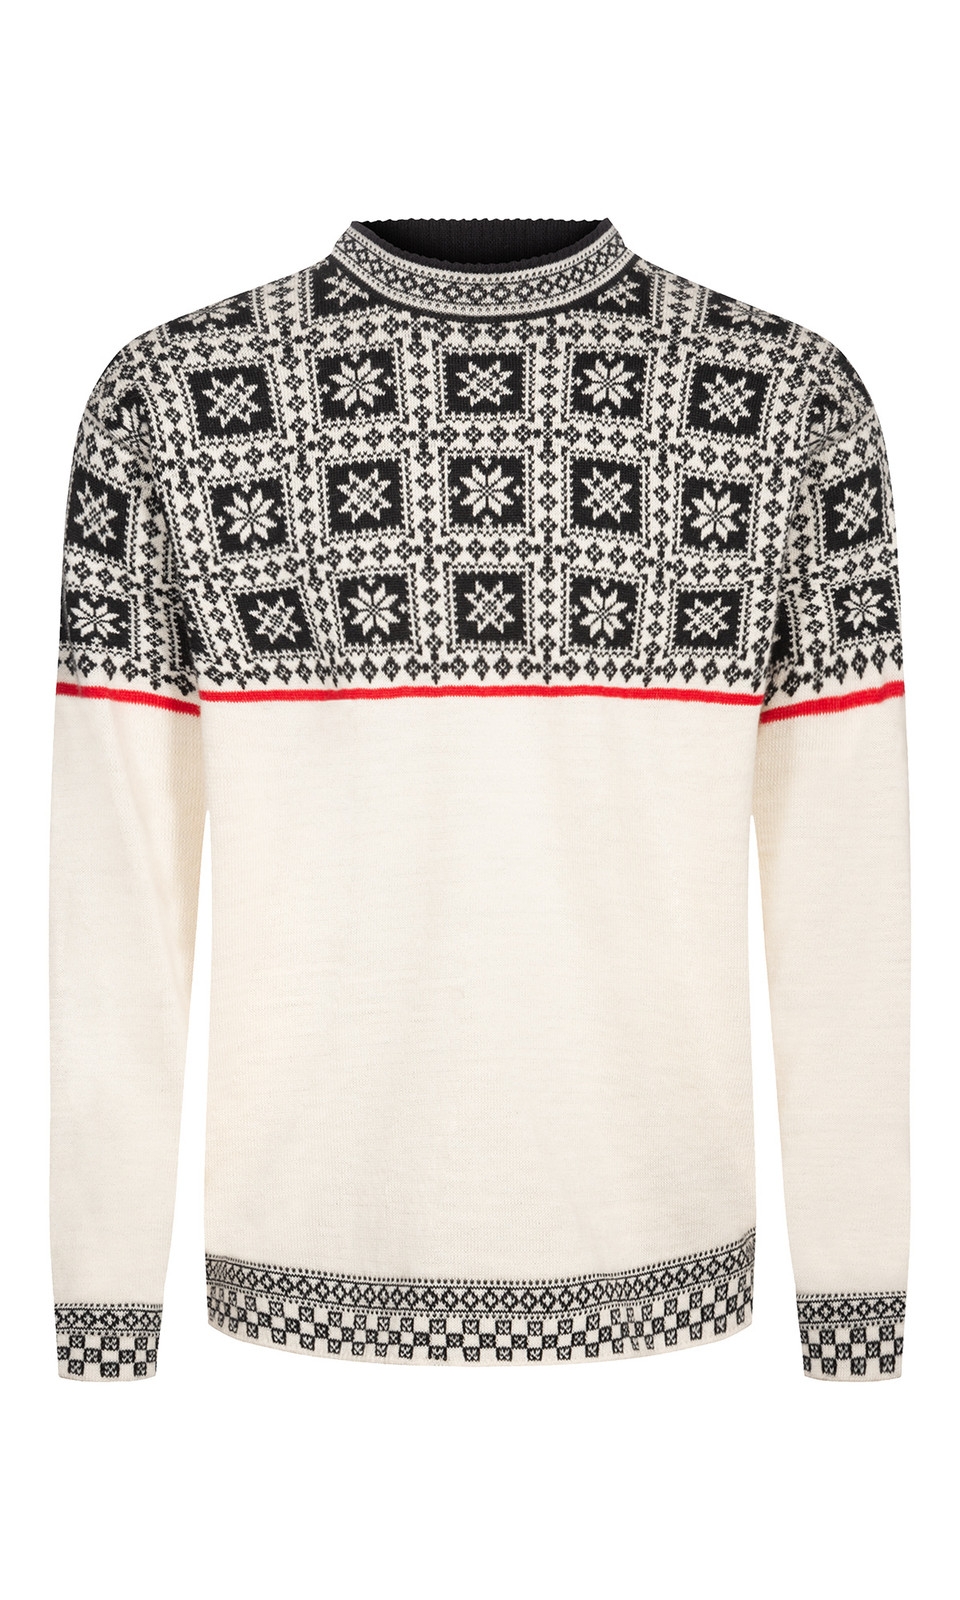 Dale of Norway Tyssøy Sweater, Mens- Off White/Black/Raspberry, 94411-A (94411-A)